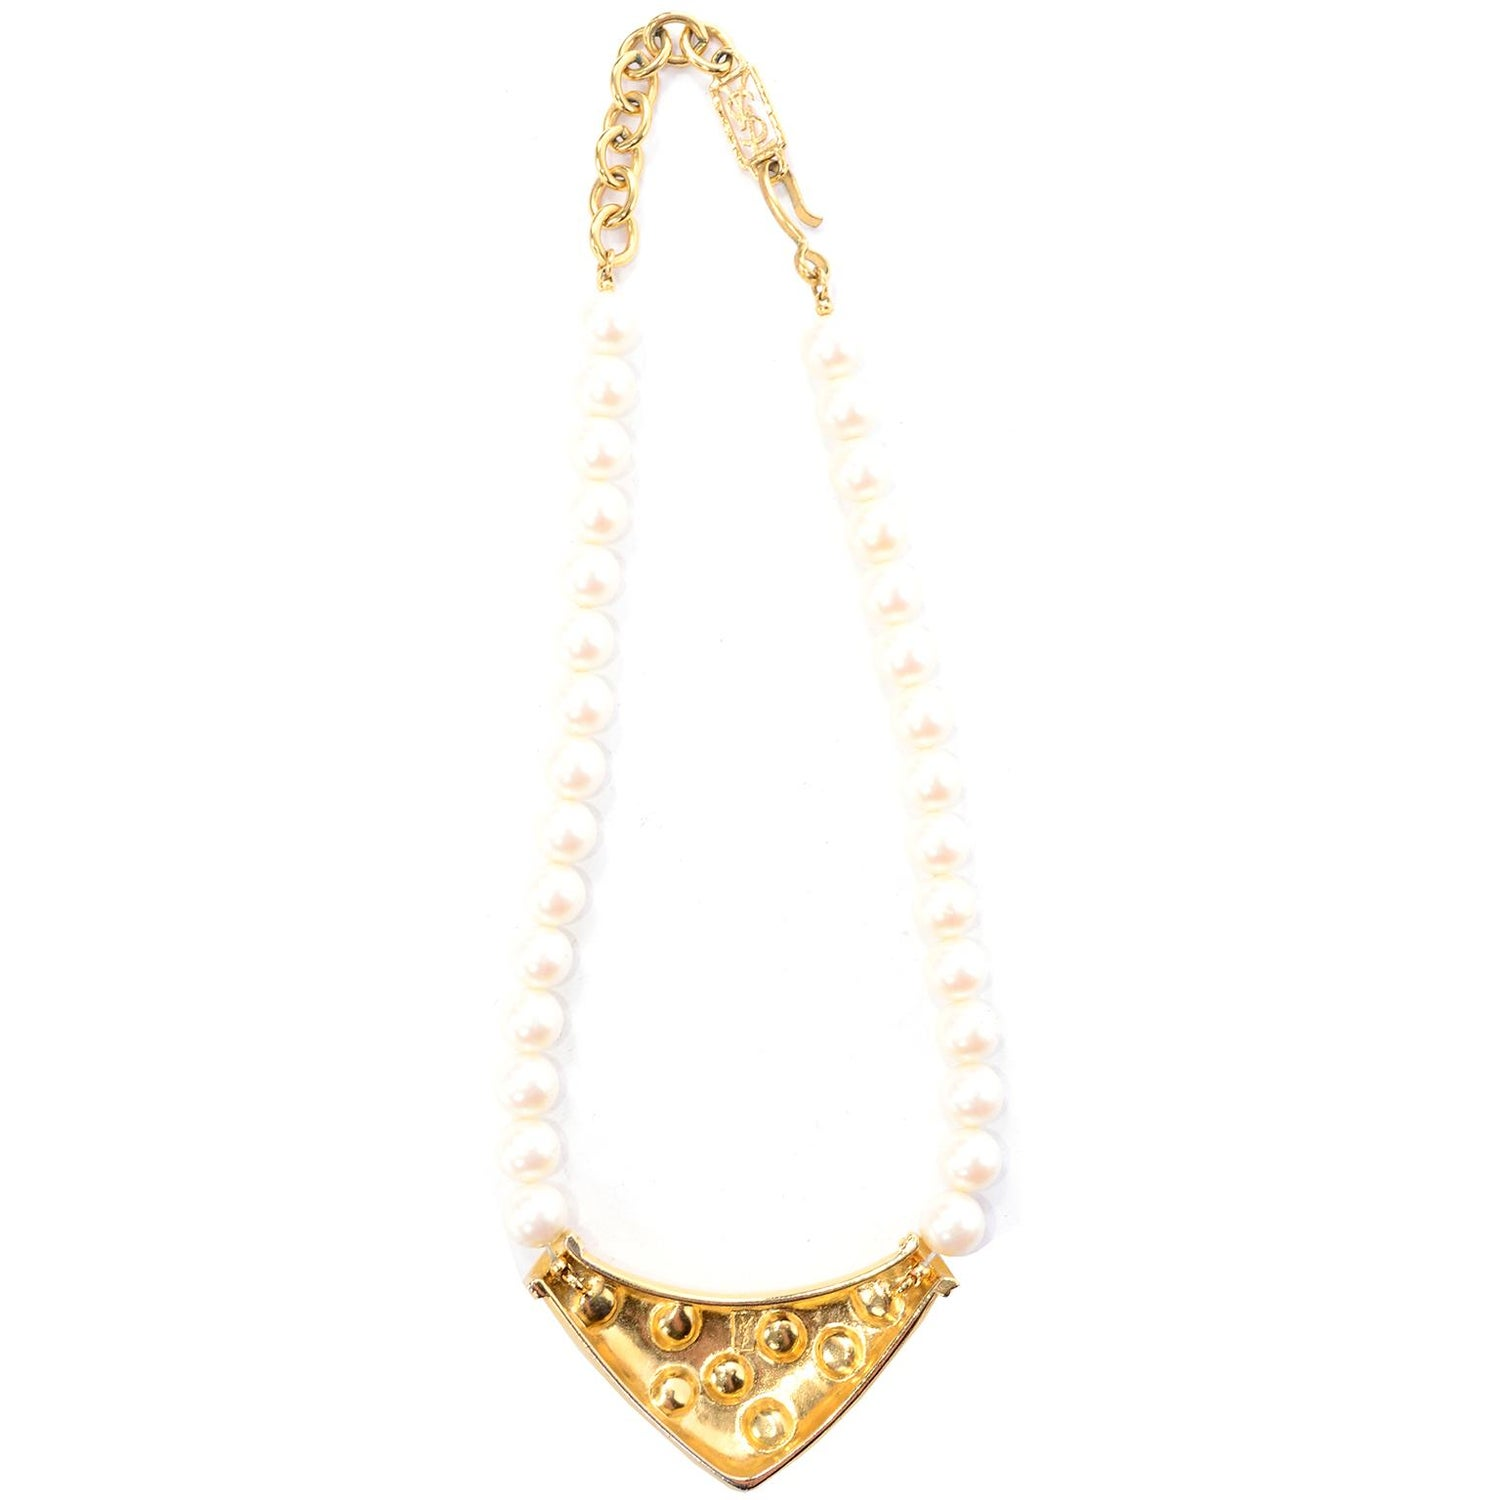 479efc811aa Yves Saint Laurent Signed YSL Vintage Pearls Gold Tone Bib Necklace w Red  Stones For Sale at 1stdibs